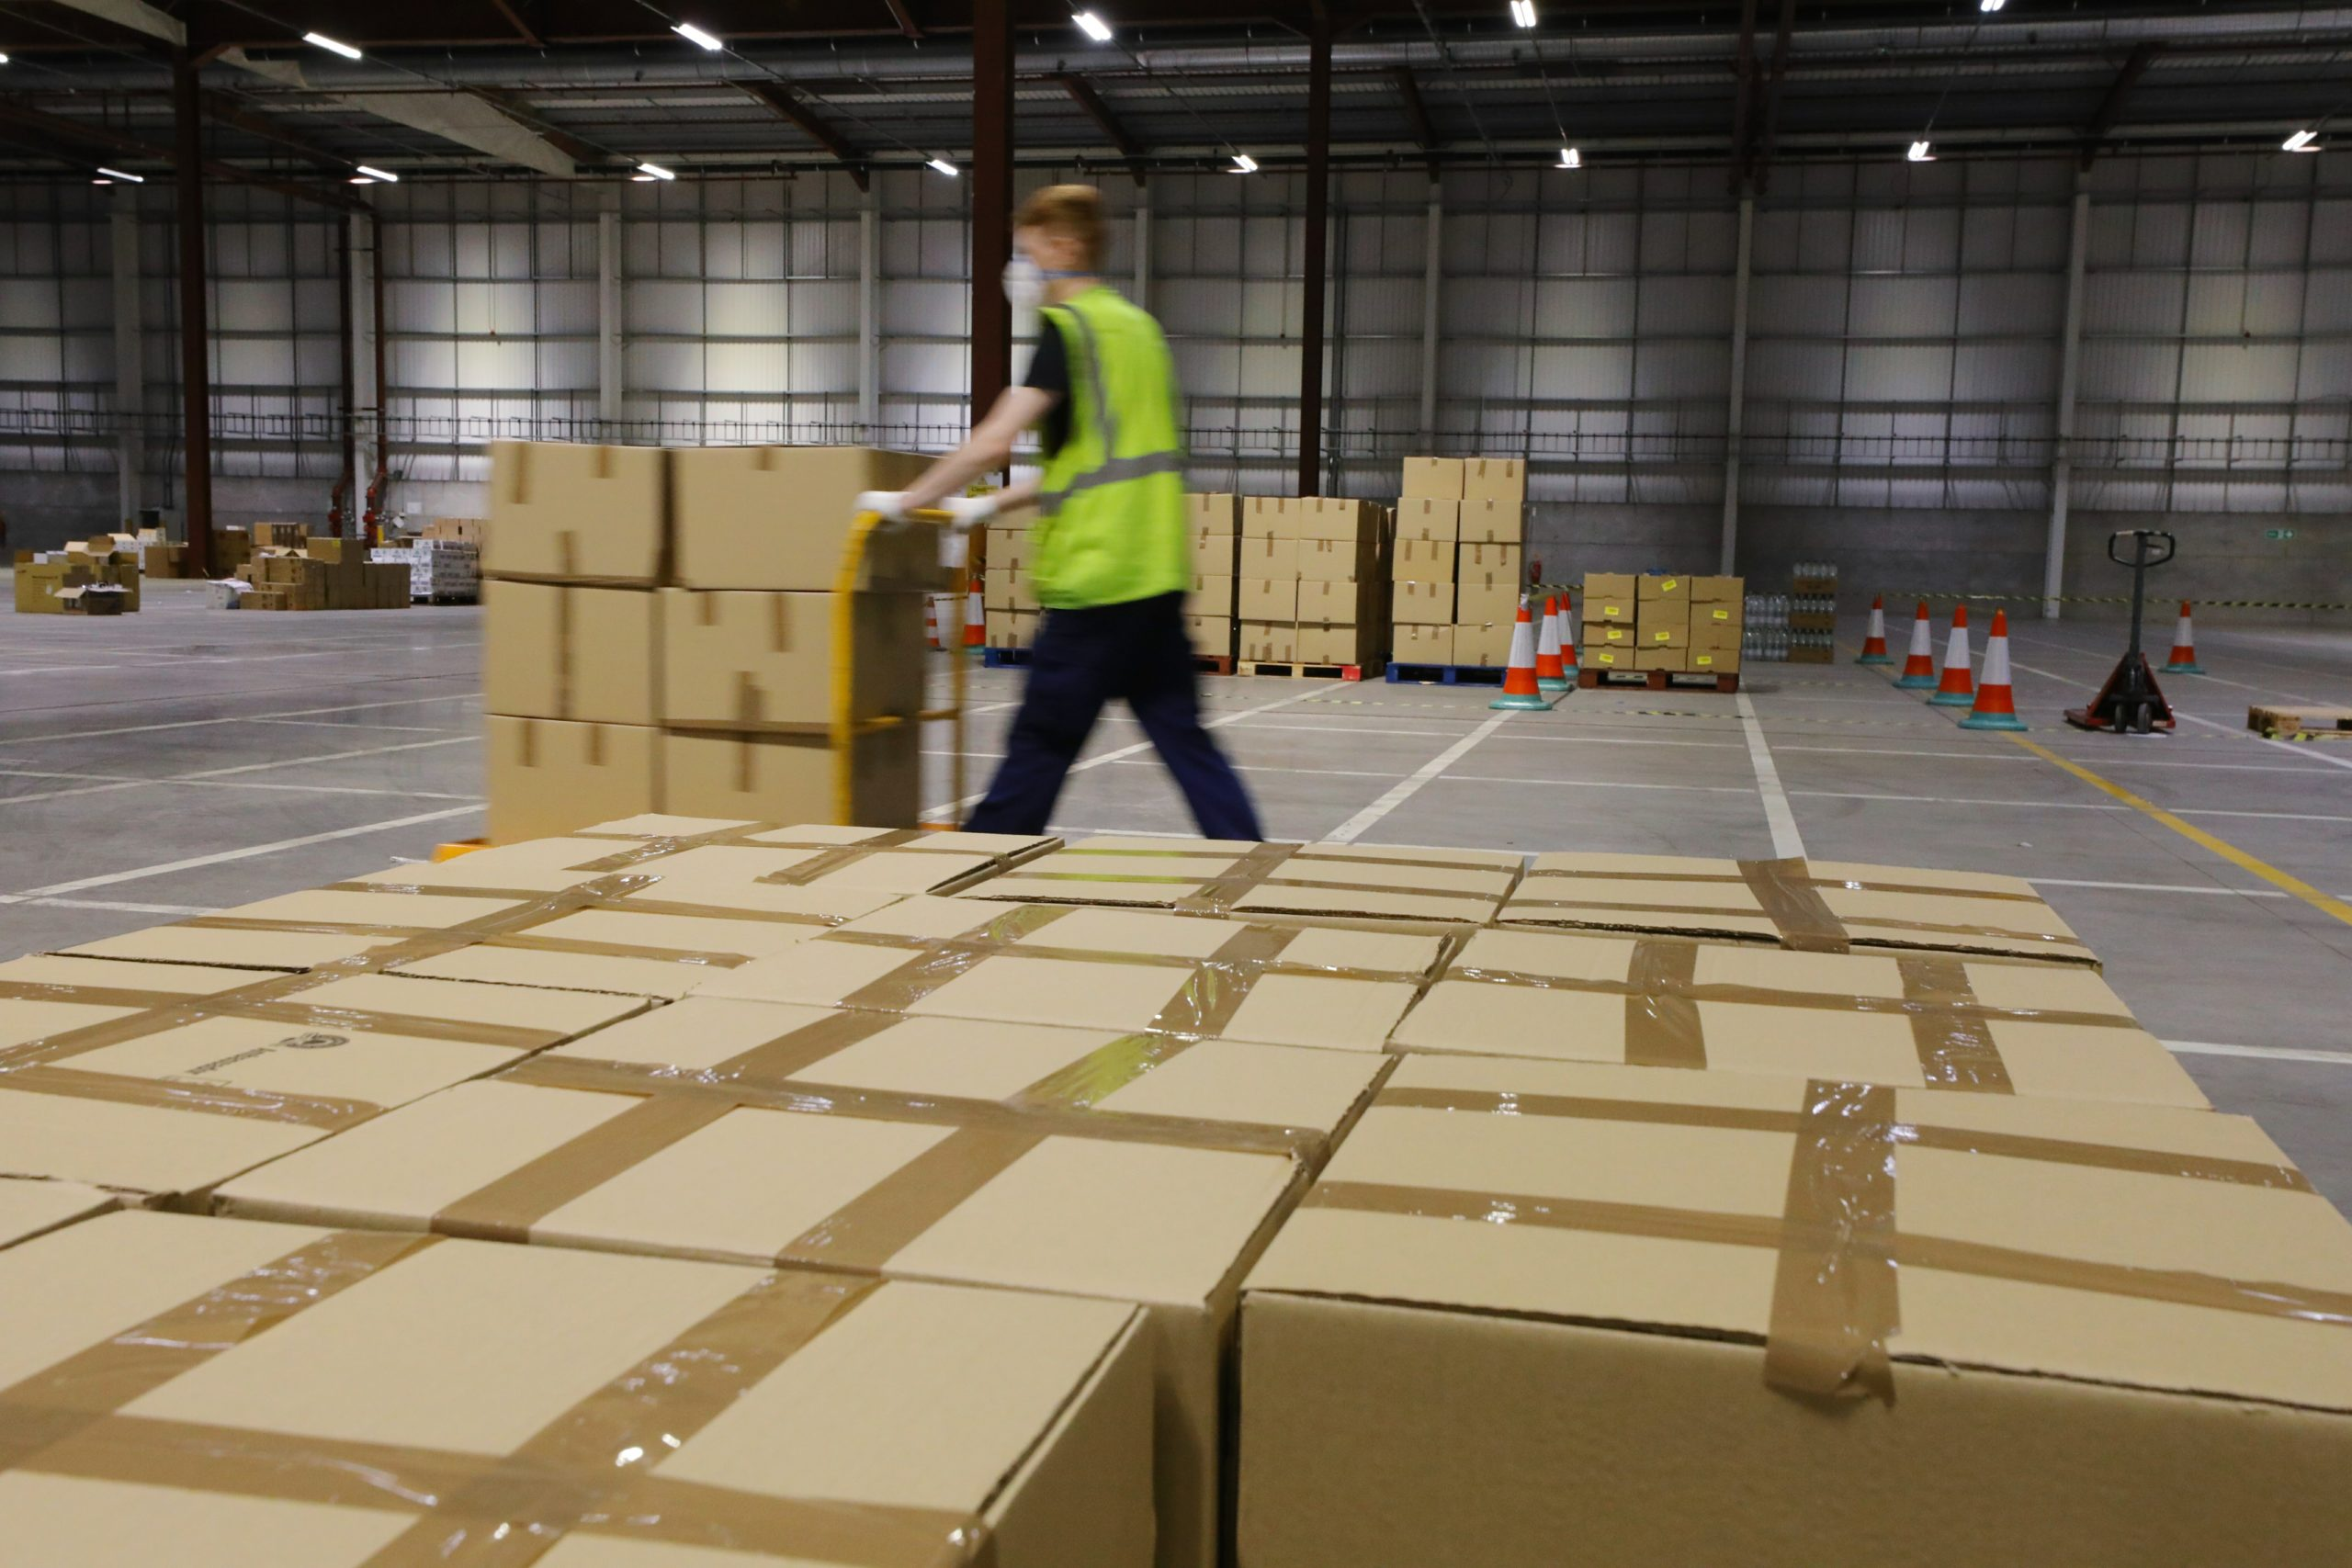 Boxes of food ready for distribution at the Michelin Plant in Dundee.